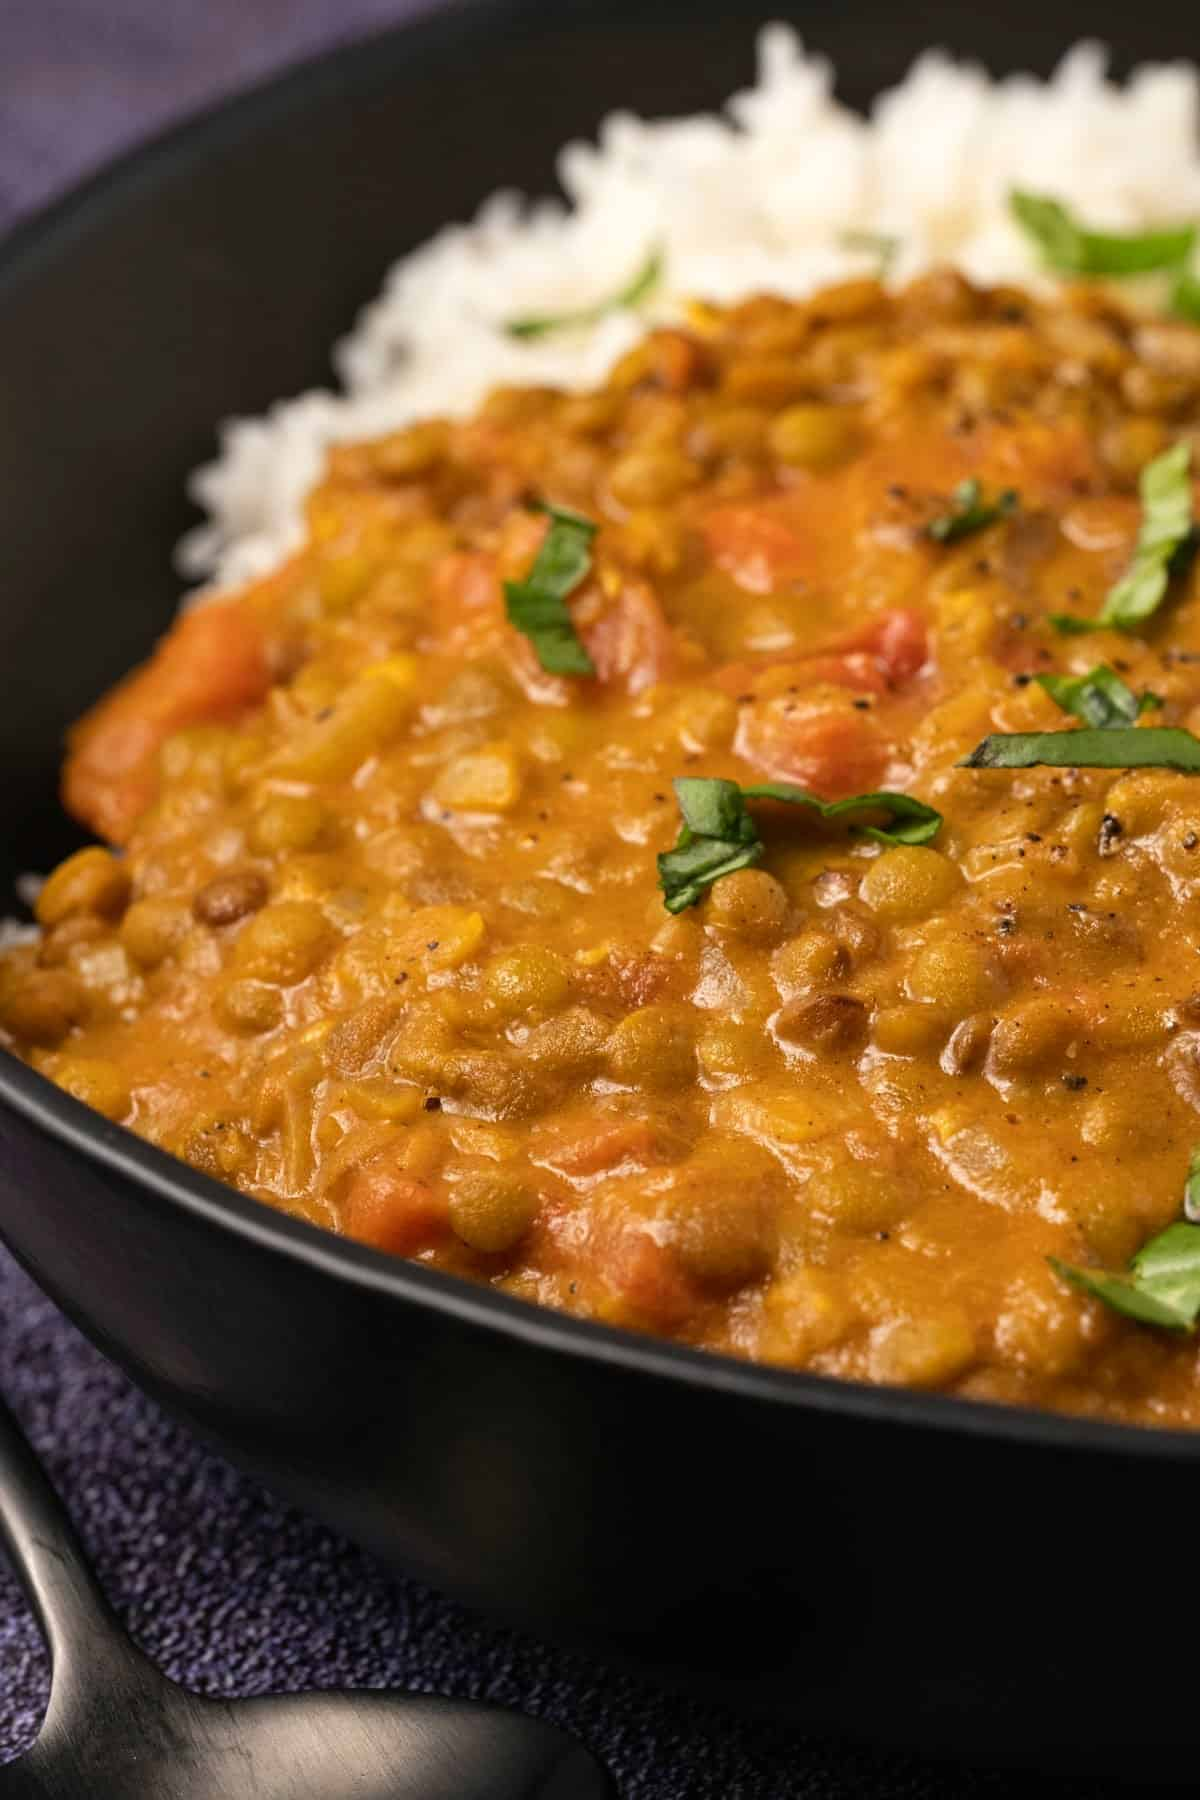 Lentil curry with rice and fresh basil in a black bowl.